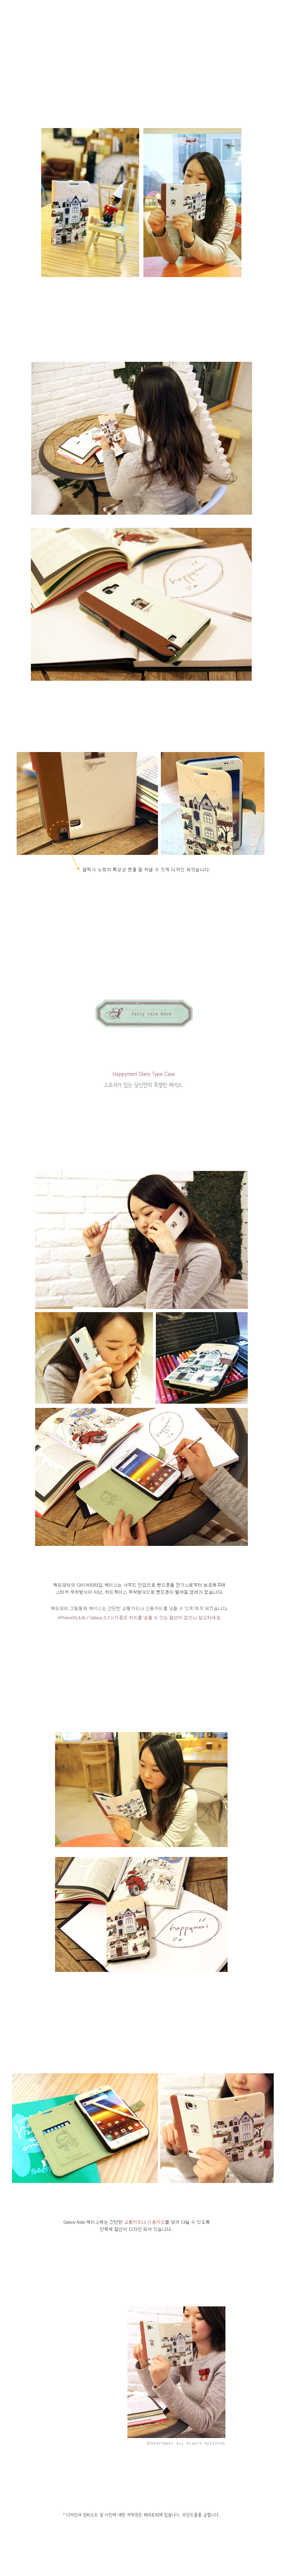 [HAPPYMORI] Flip Cover Case _ Fairy tale book(iPhone6Plus,iPhone6Plus_s,Galaxy S6Edge,Galaxy S6,Galaxy Note4)